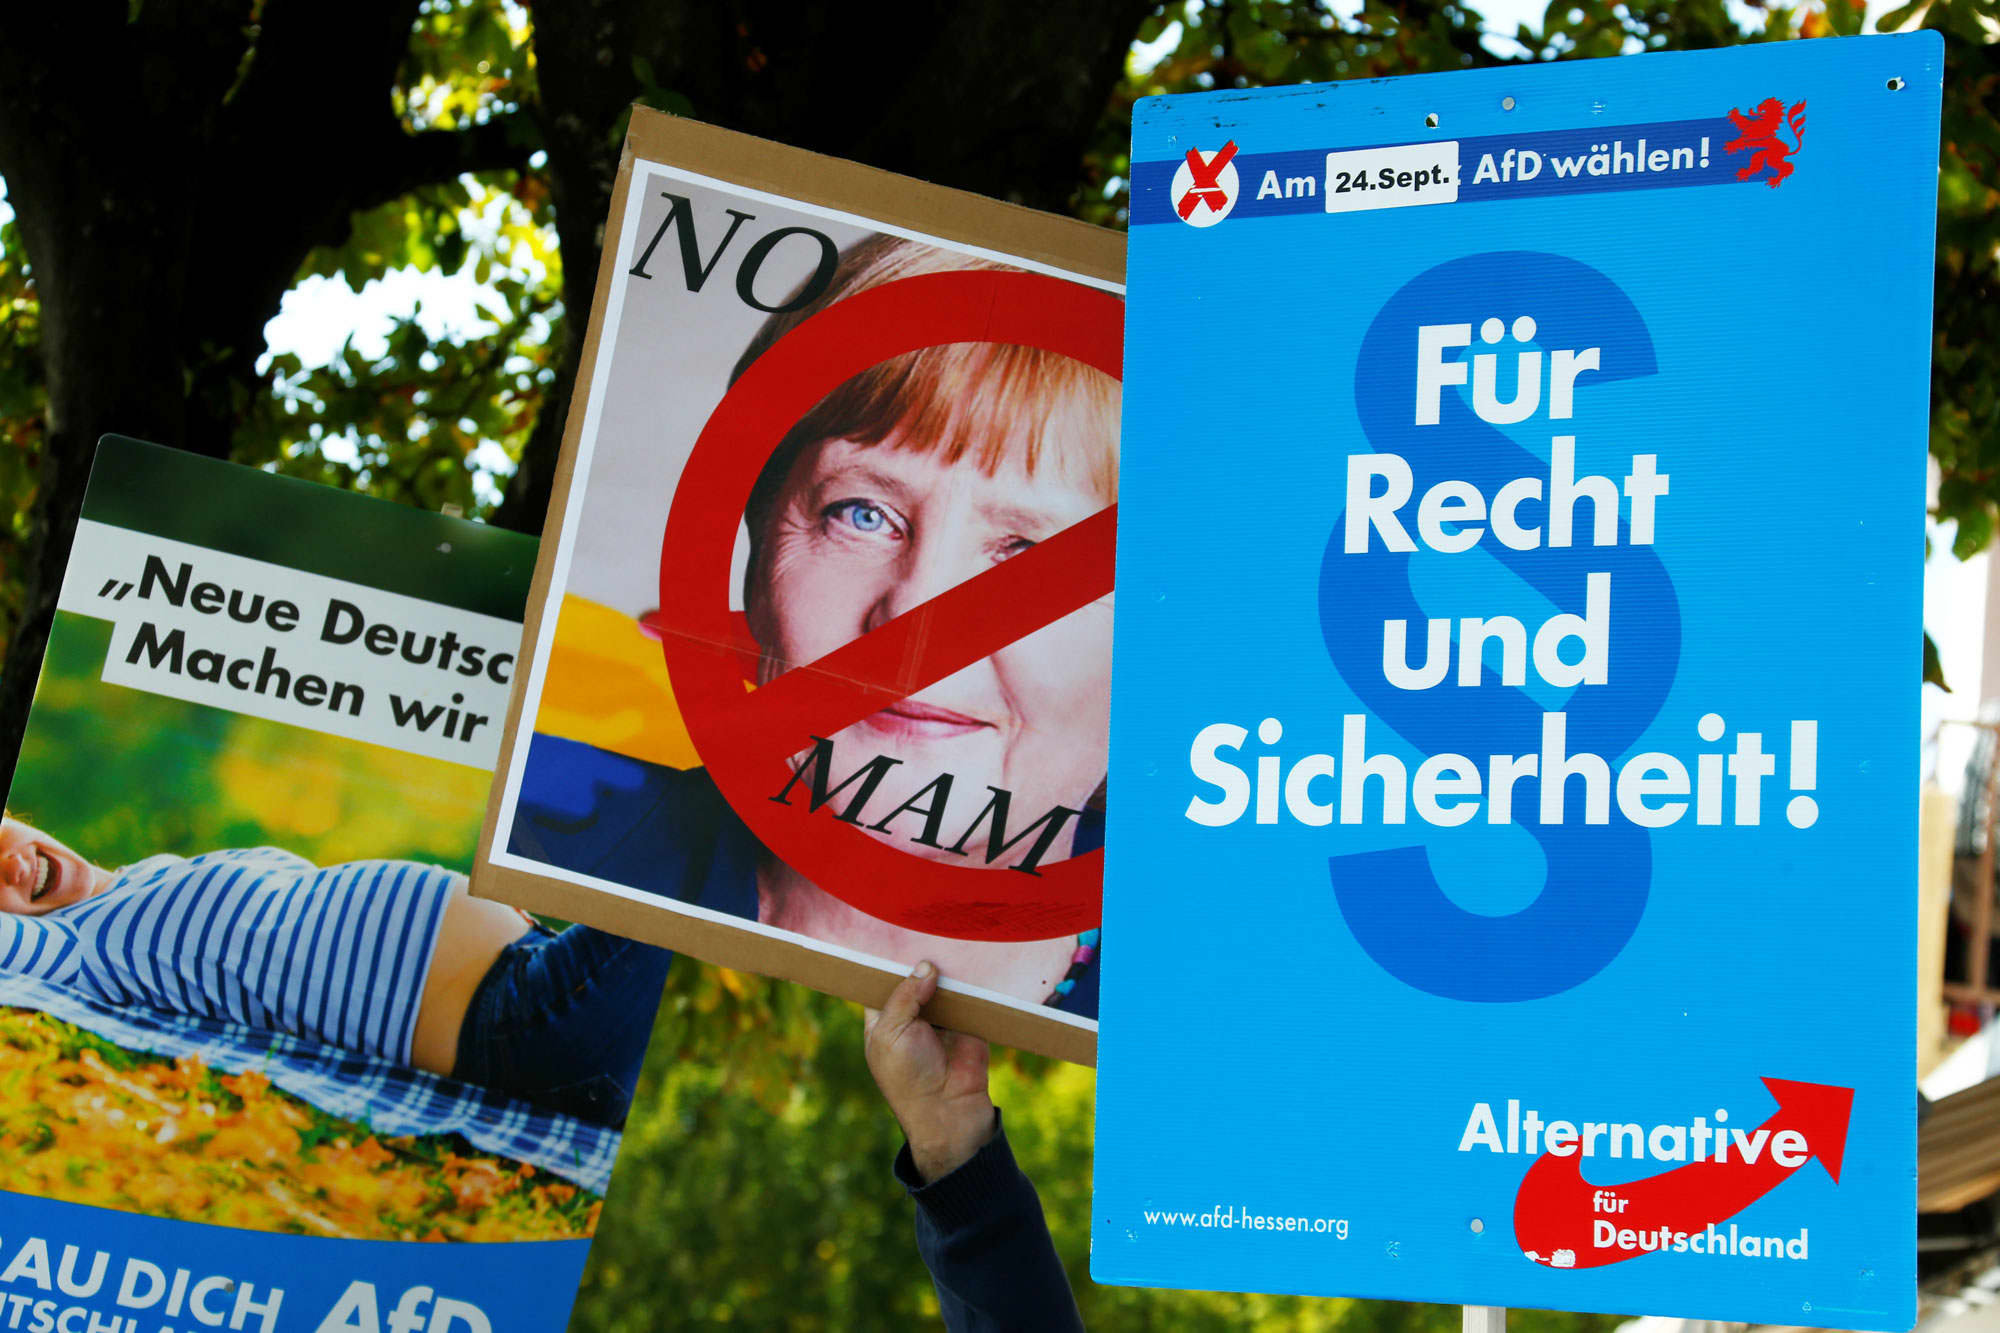 People hold anti-immigration party Alternative fuer Deutschland AfD placards as they protest against German Chancellor Angela Merkel campaigning in Heppenheim, Germany, September 22, 2017.